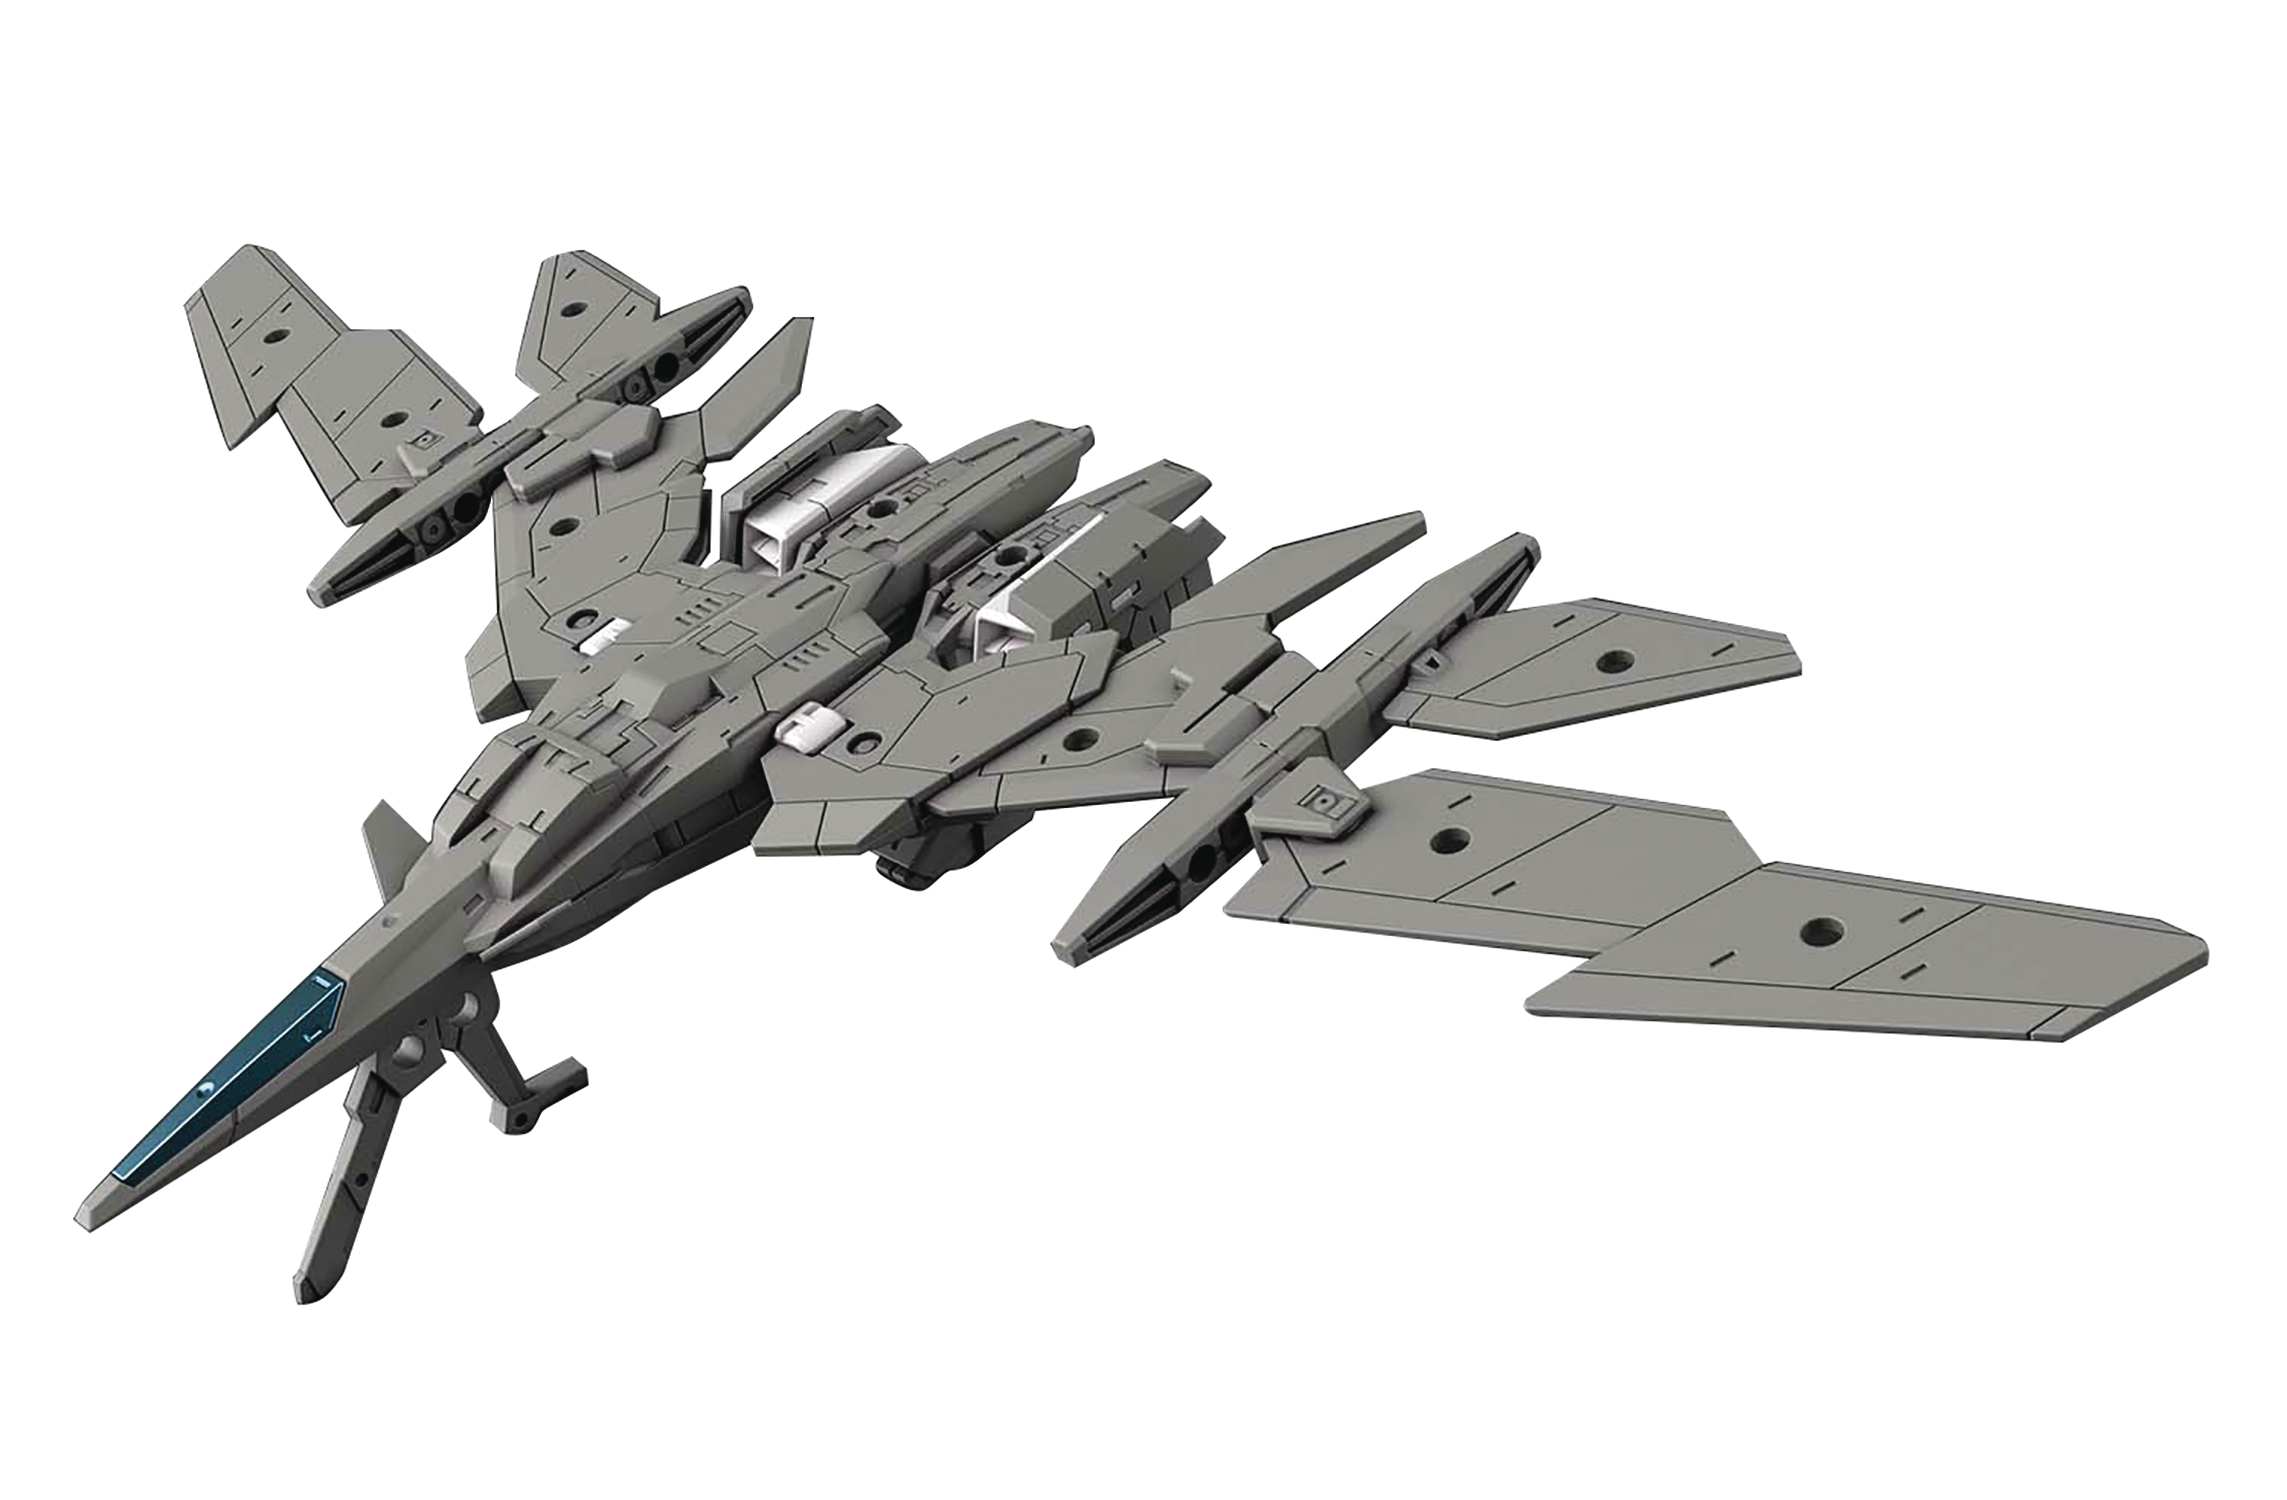 30 MINUTE MISSION AIR FIGHTER GRAY EXT ARM VEHICLE MDL KIT (